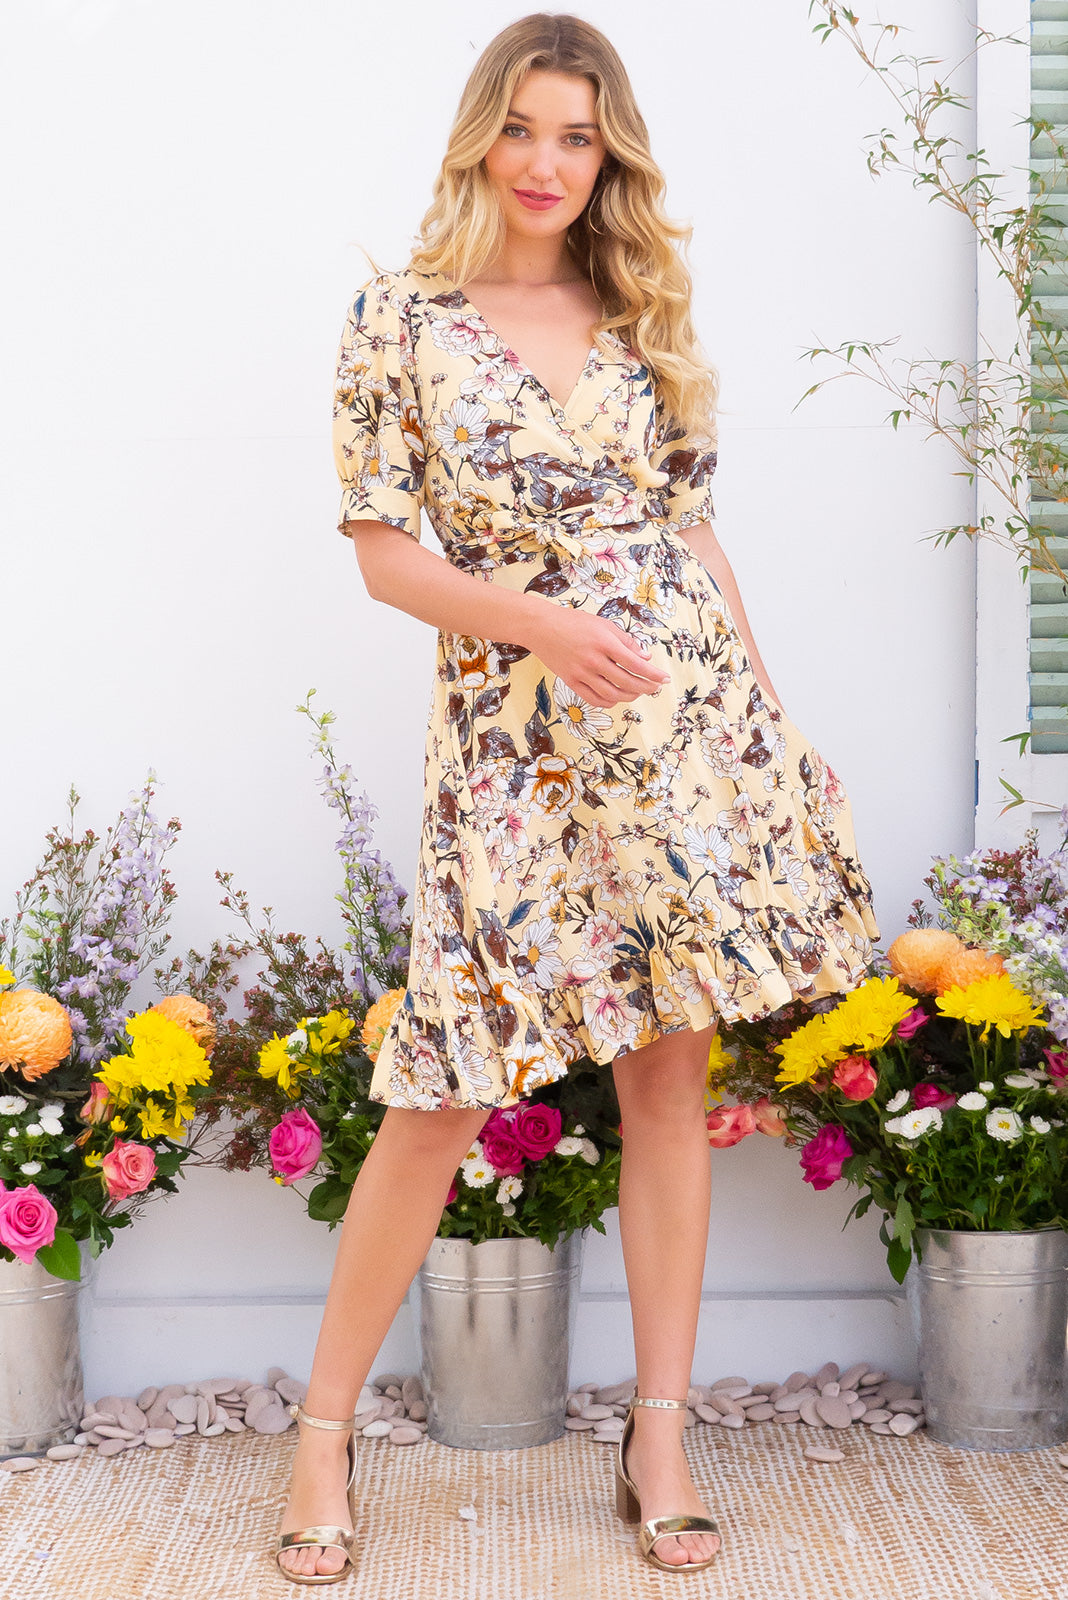 Antigua Mellow Yellow Maxi Wrap Dress in a 1940's inspired style with cuffed midi sleeves and a delicate hemline frill in a warm pastel yellow and tonal romantic floral print on crinkle woven rayon